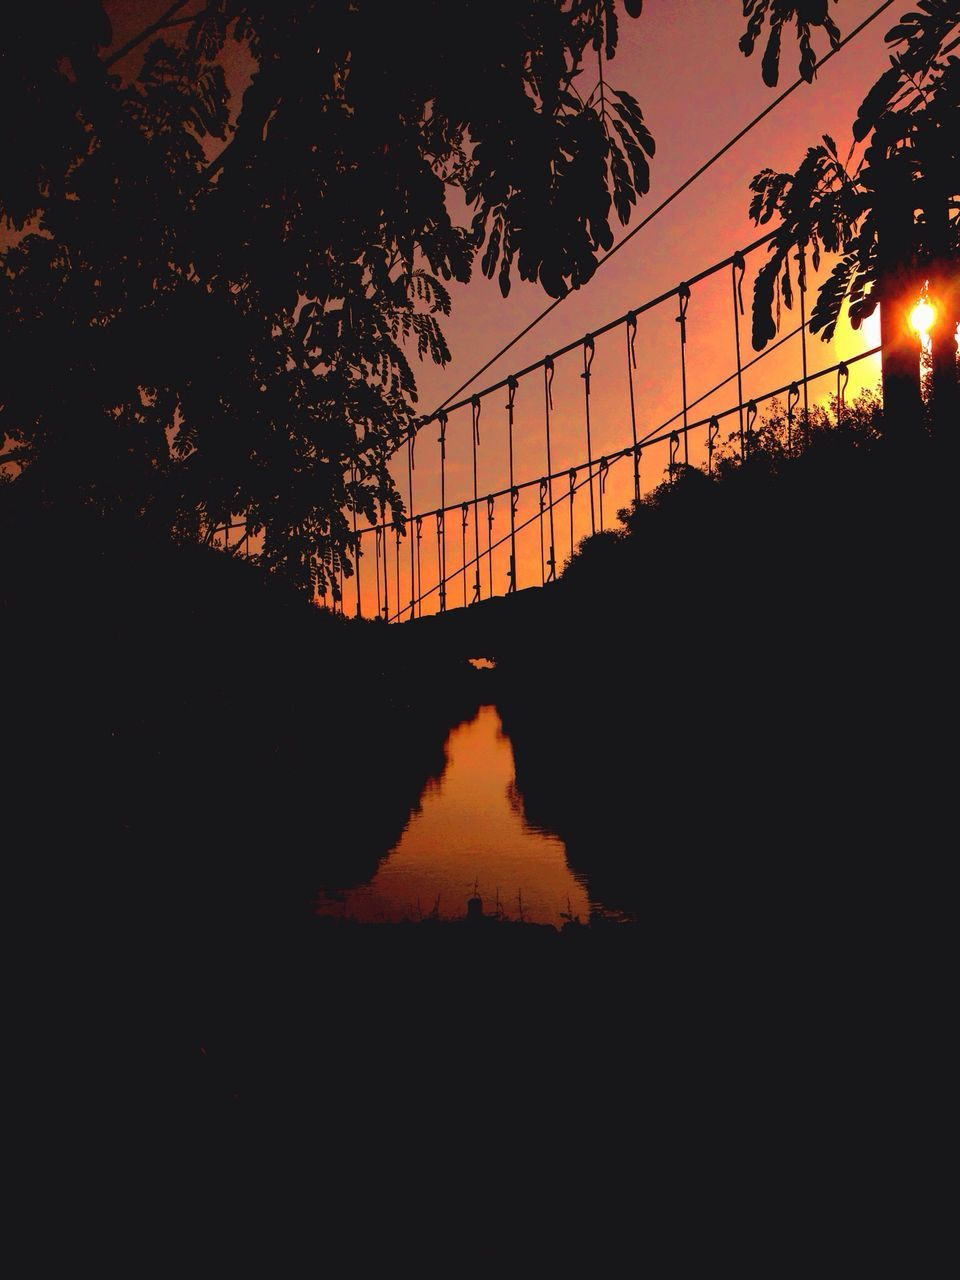 sunset, silhouette, tree, reflection, sky, water, nature, outdoors, no people, architecture, river, scenics, tranquil scene, tranquility, travel destinations, beauty in nature, built structure, growth, city